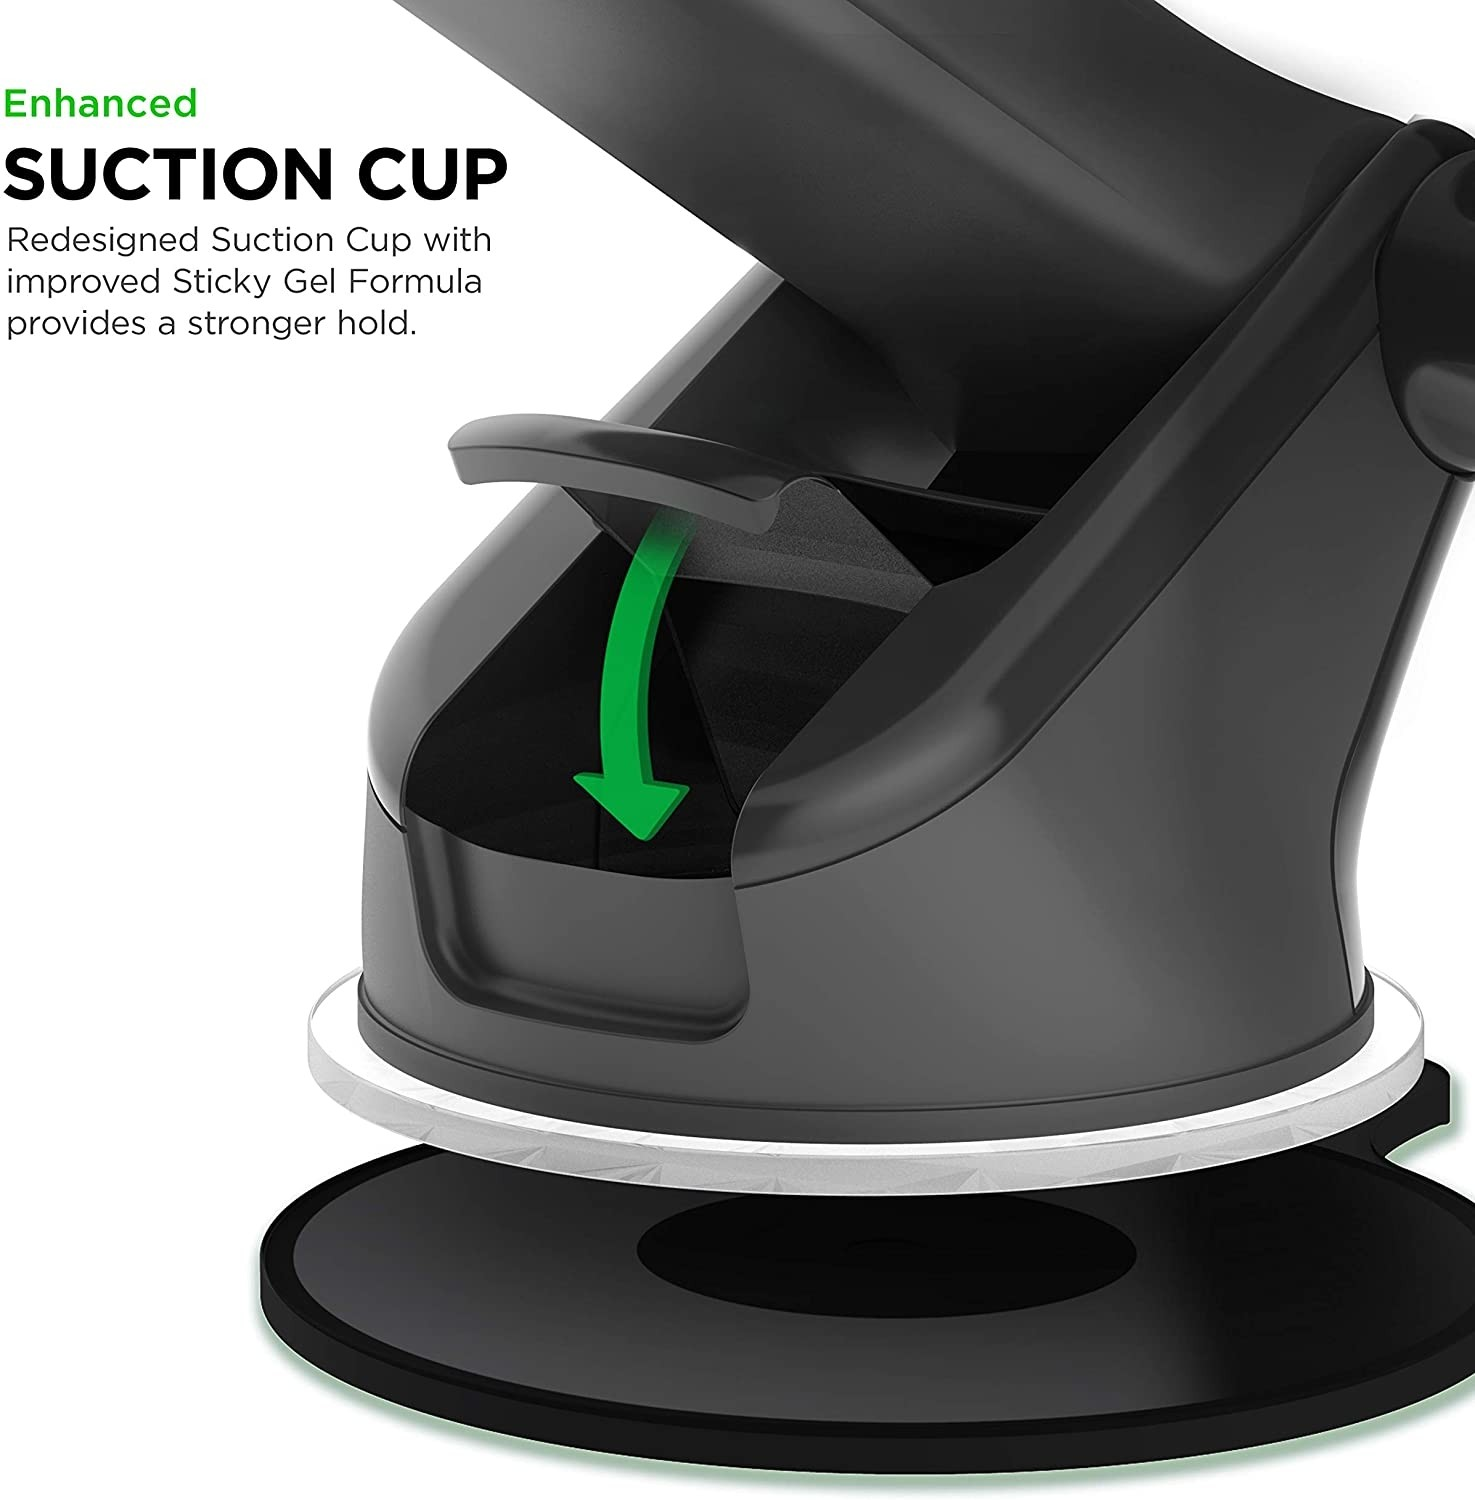 iOttie Easy One Touch 5 Car & Desk Mount Phone Holder - Compatible with all iPhone Models, HLCRIO171AM